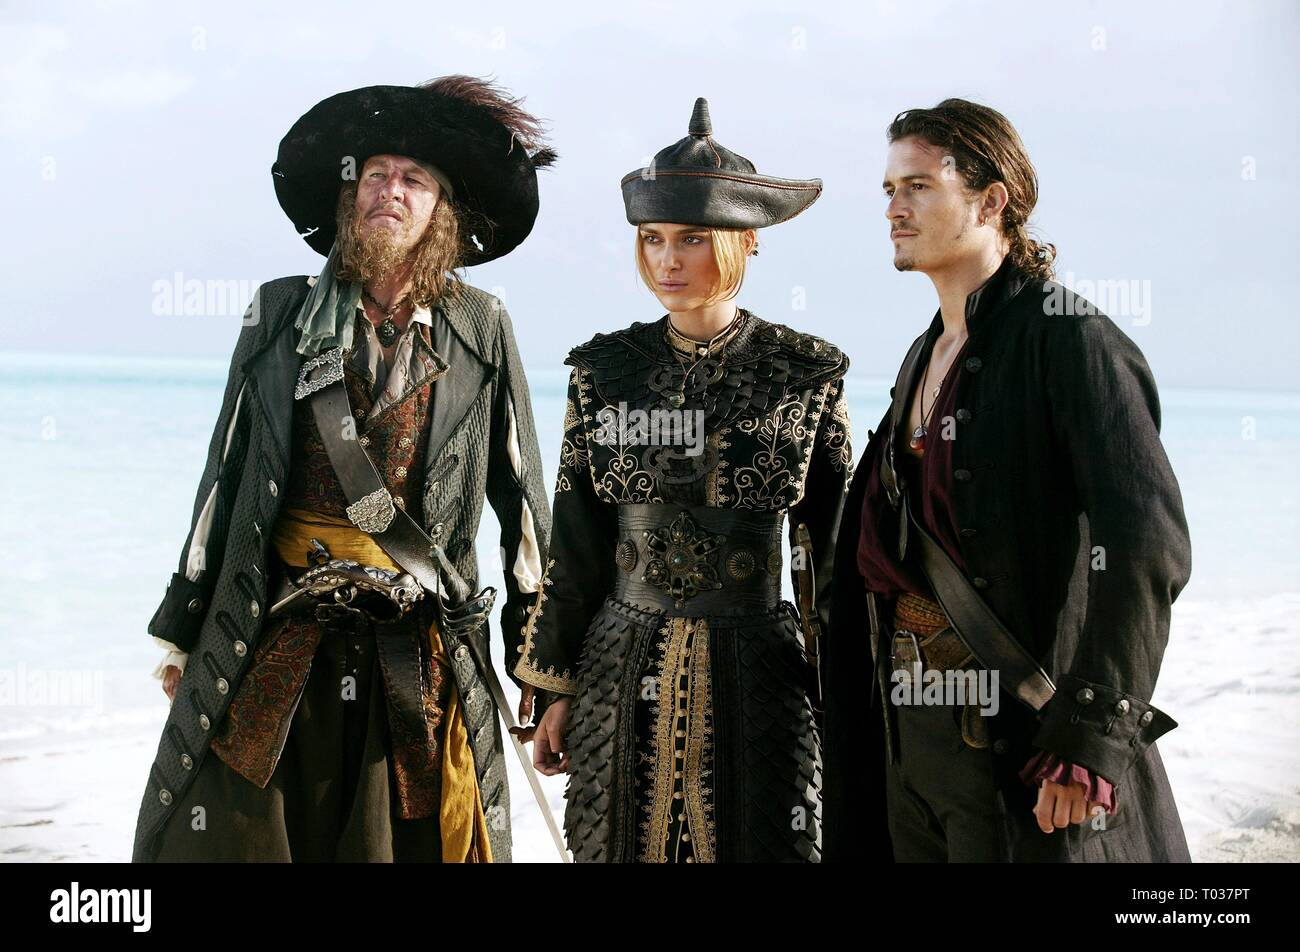 GEOFFREY RUSH, KEIRA KNIGHTLEY, ORLANDO BLOOM, PIRATES OF THE CARIBBEAN: AT WORLD'S END, 2007 - Stock Image